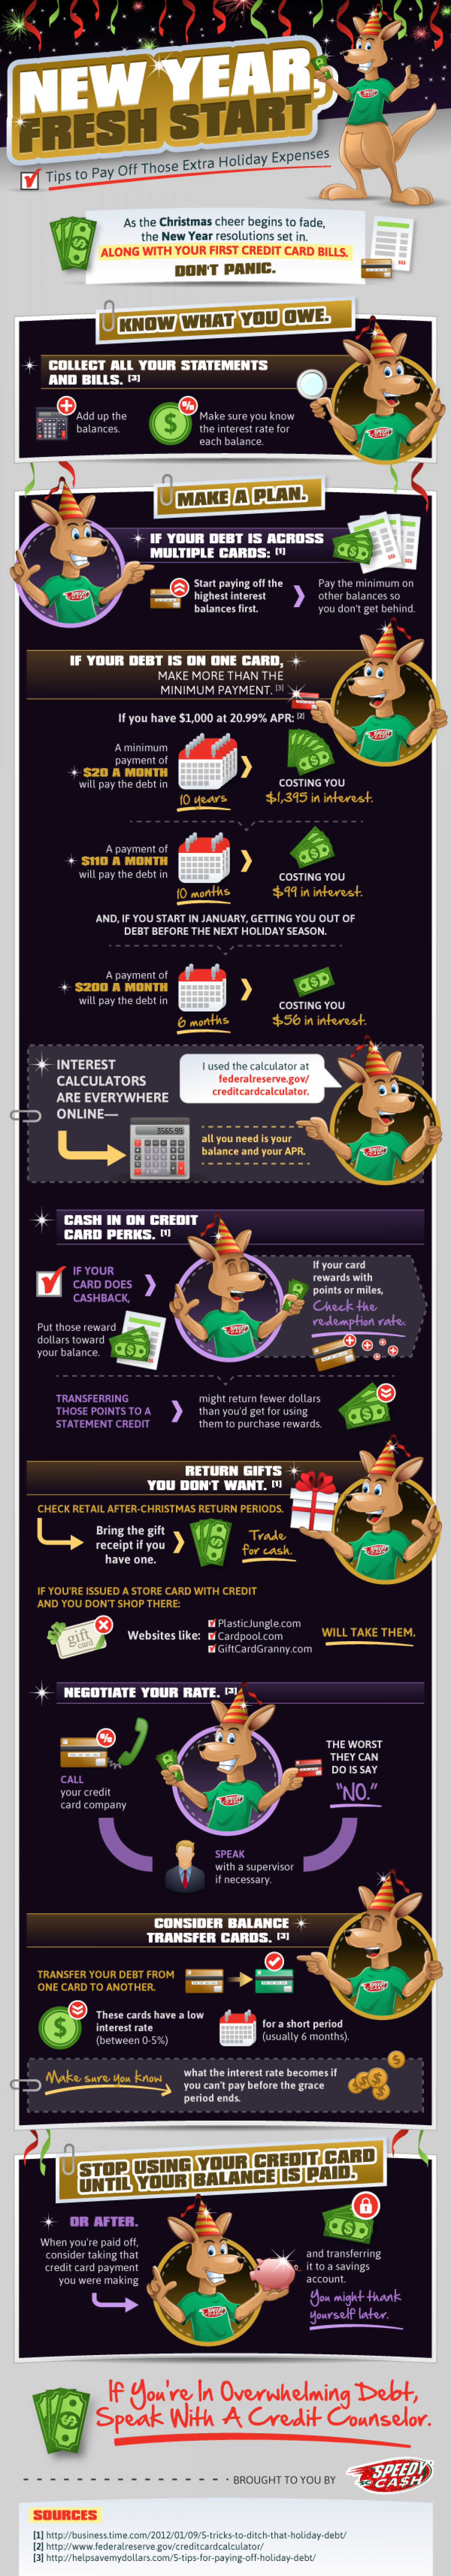 Pay Off Holiday Expenses Infographic